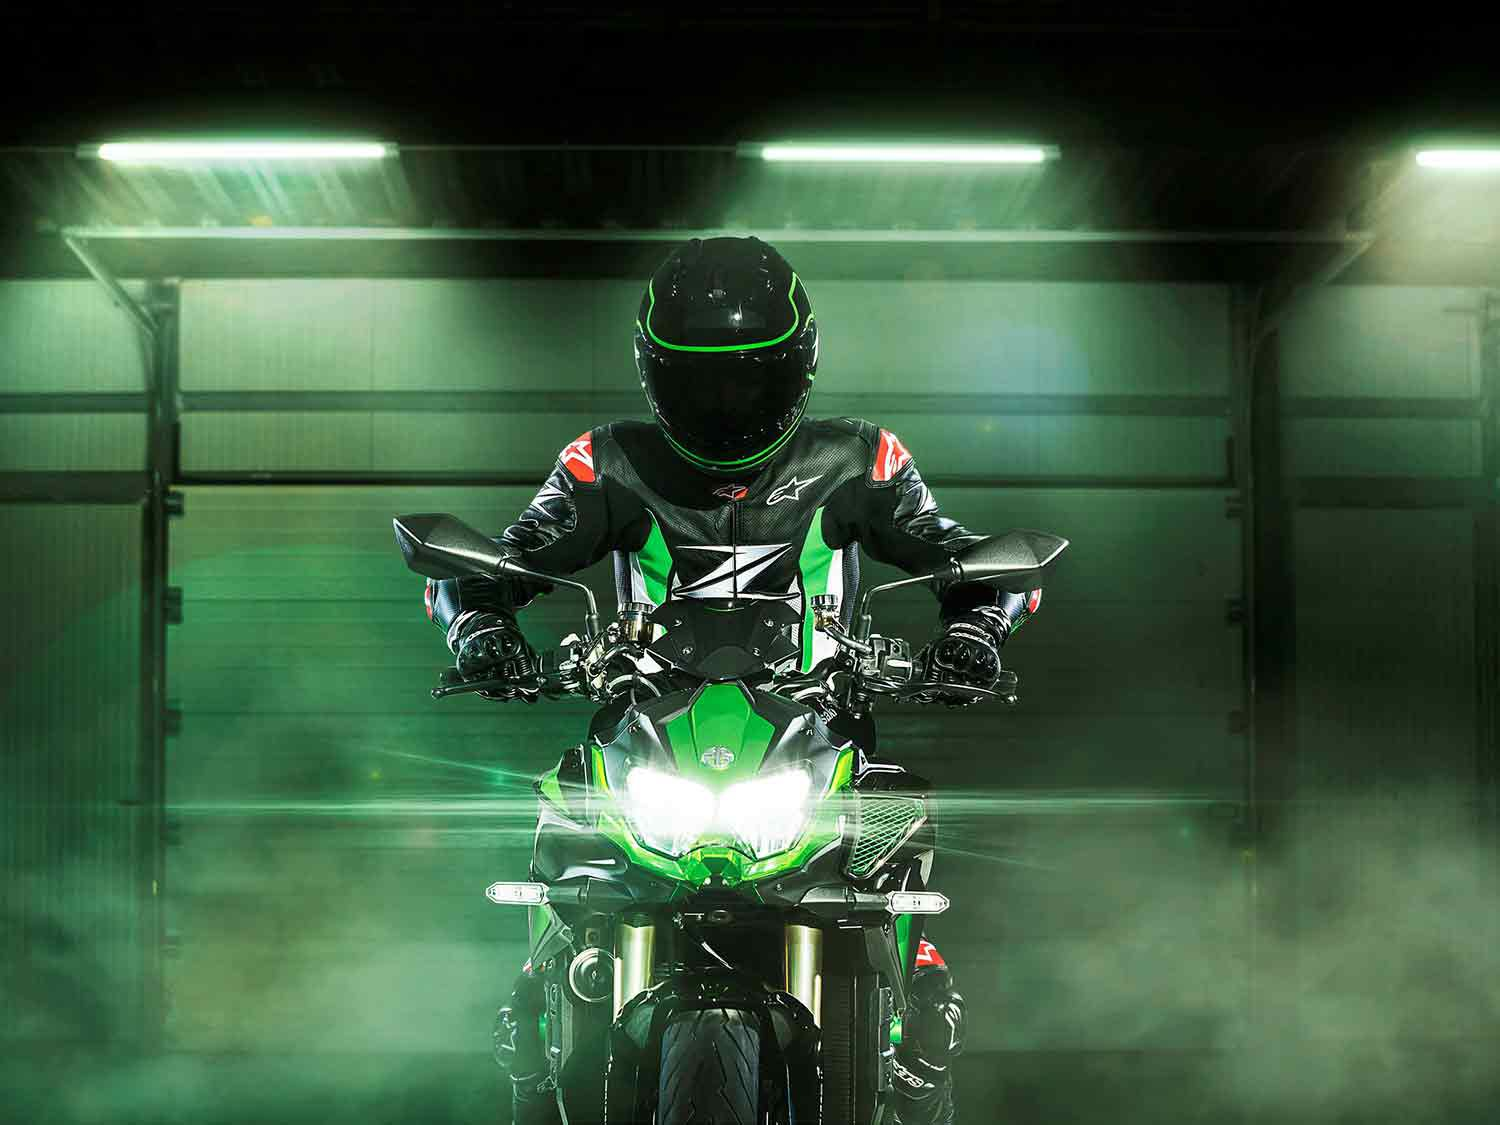 For 2021, Kawasaki has added a trick electronic self-adjusting suspension package from Showa to the already impressive Z H2 hyper naked.